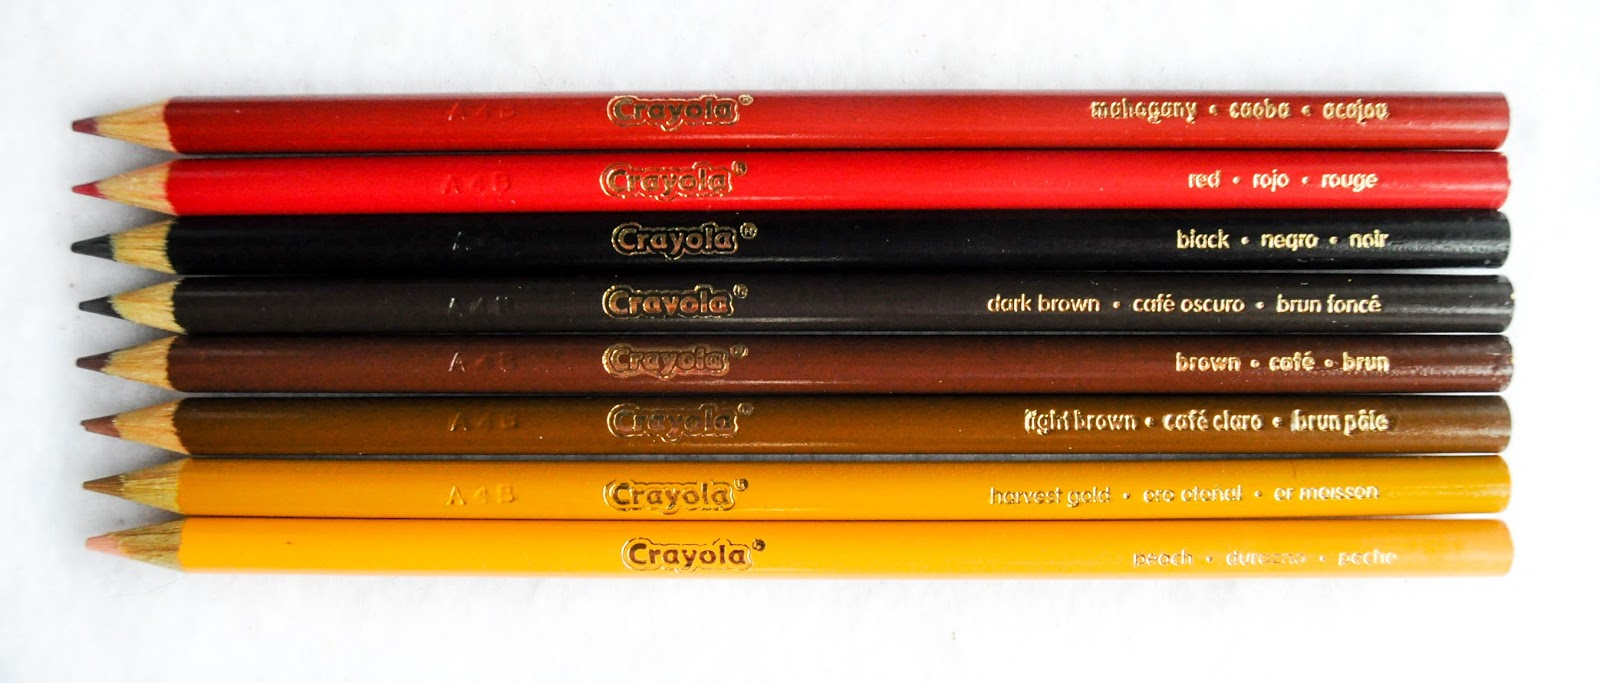 crayola multicultural colored pencils and markers what s inside the